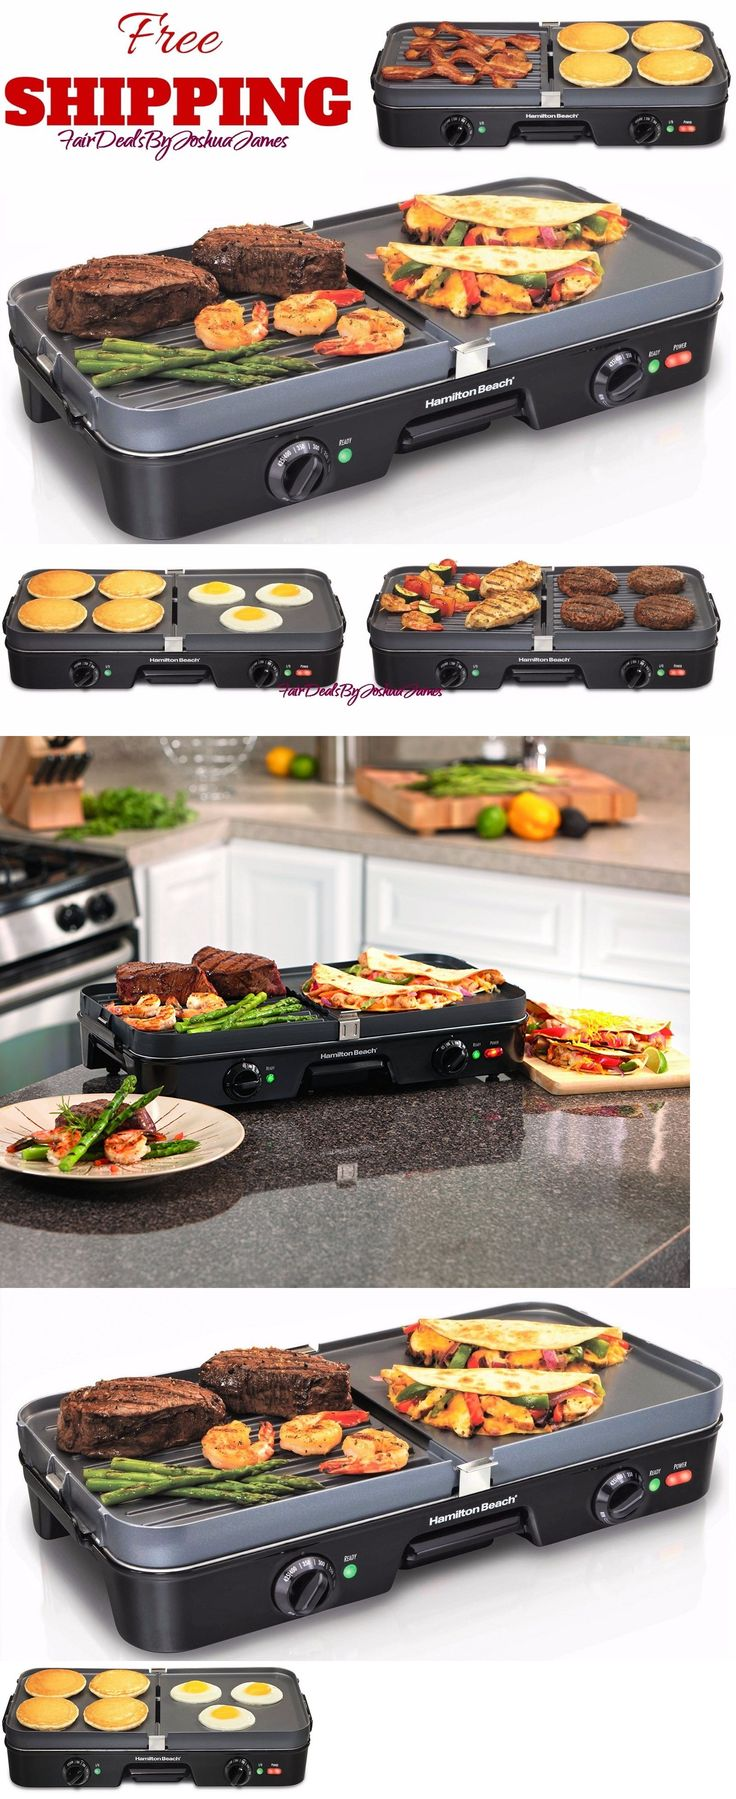 Grills and Griddles 20675: Reversible Grill Griddle Pan Hamburger Steak Large Combo Electric Nonstick Fry -> BUY IT NOW ONLY: $44.95 on eBay!